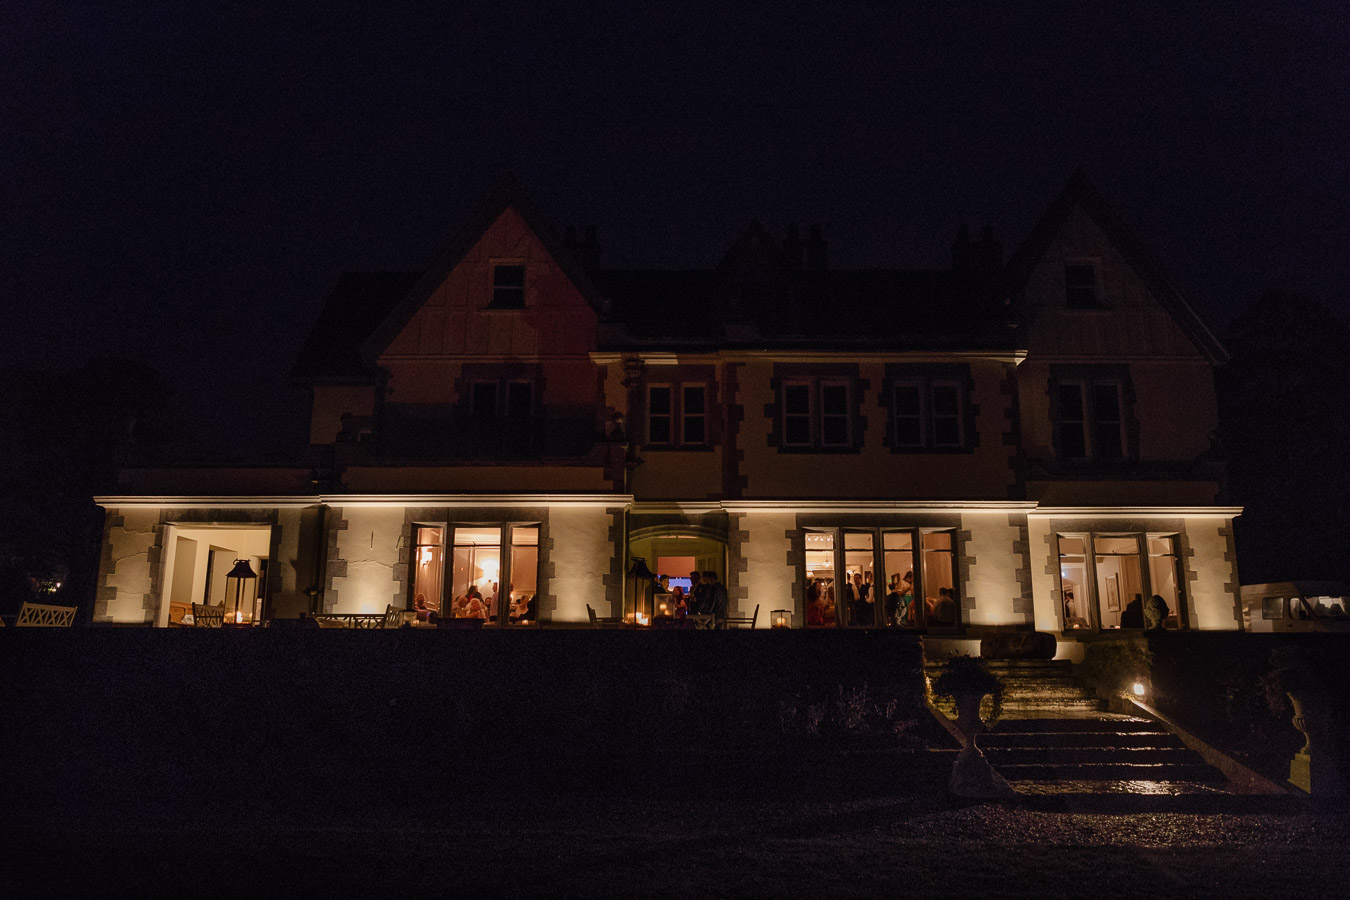 Dromquinna manor at night